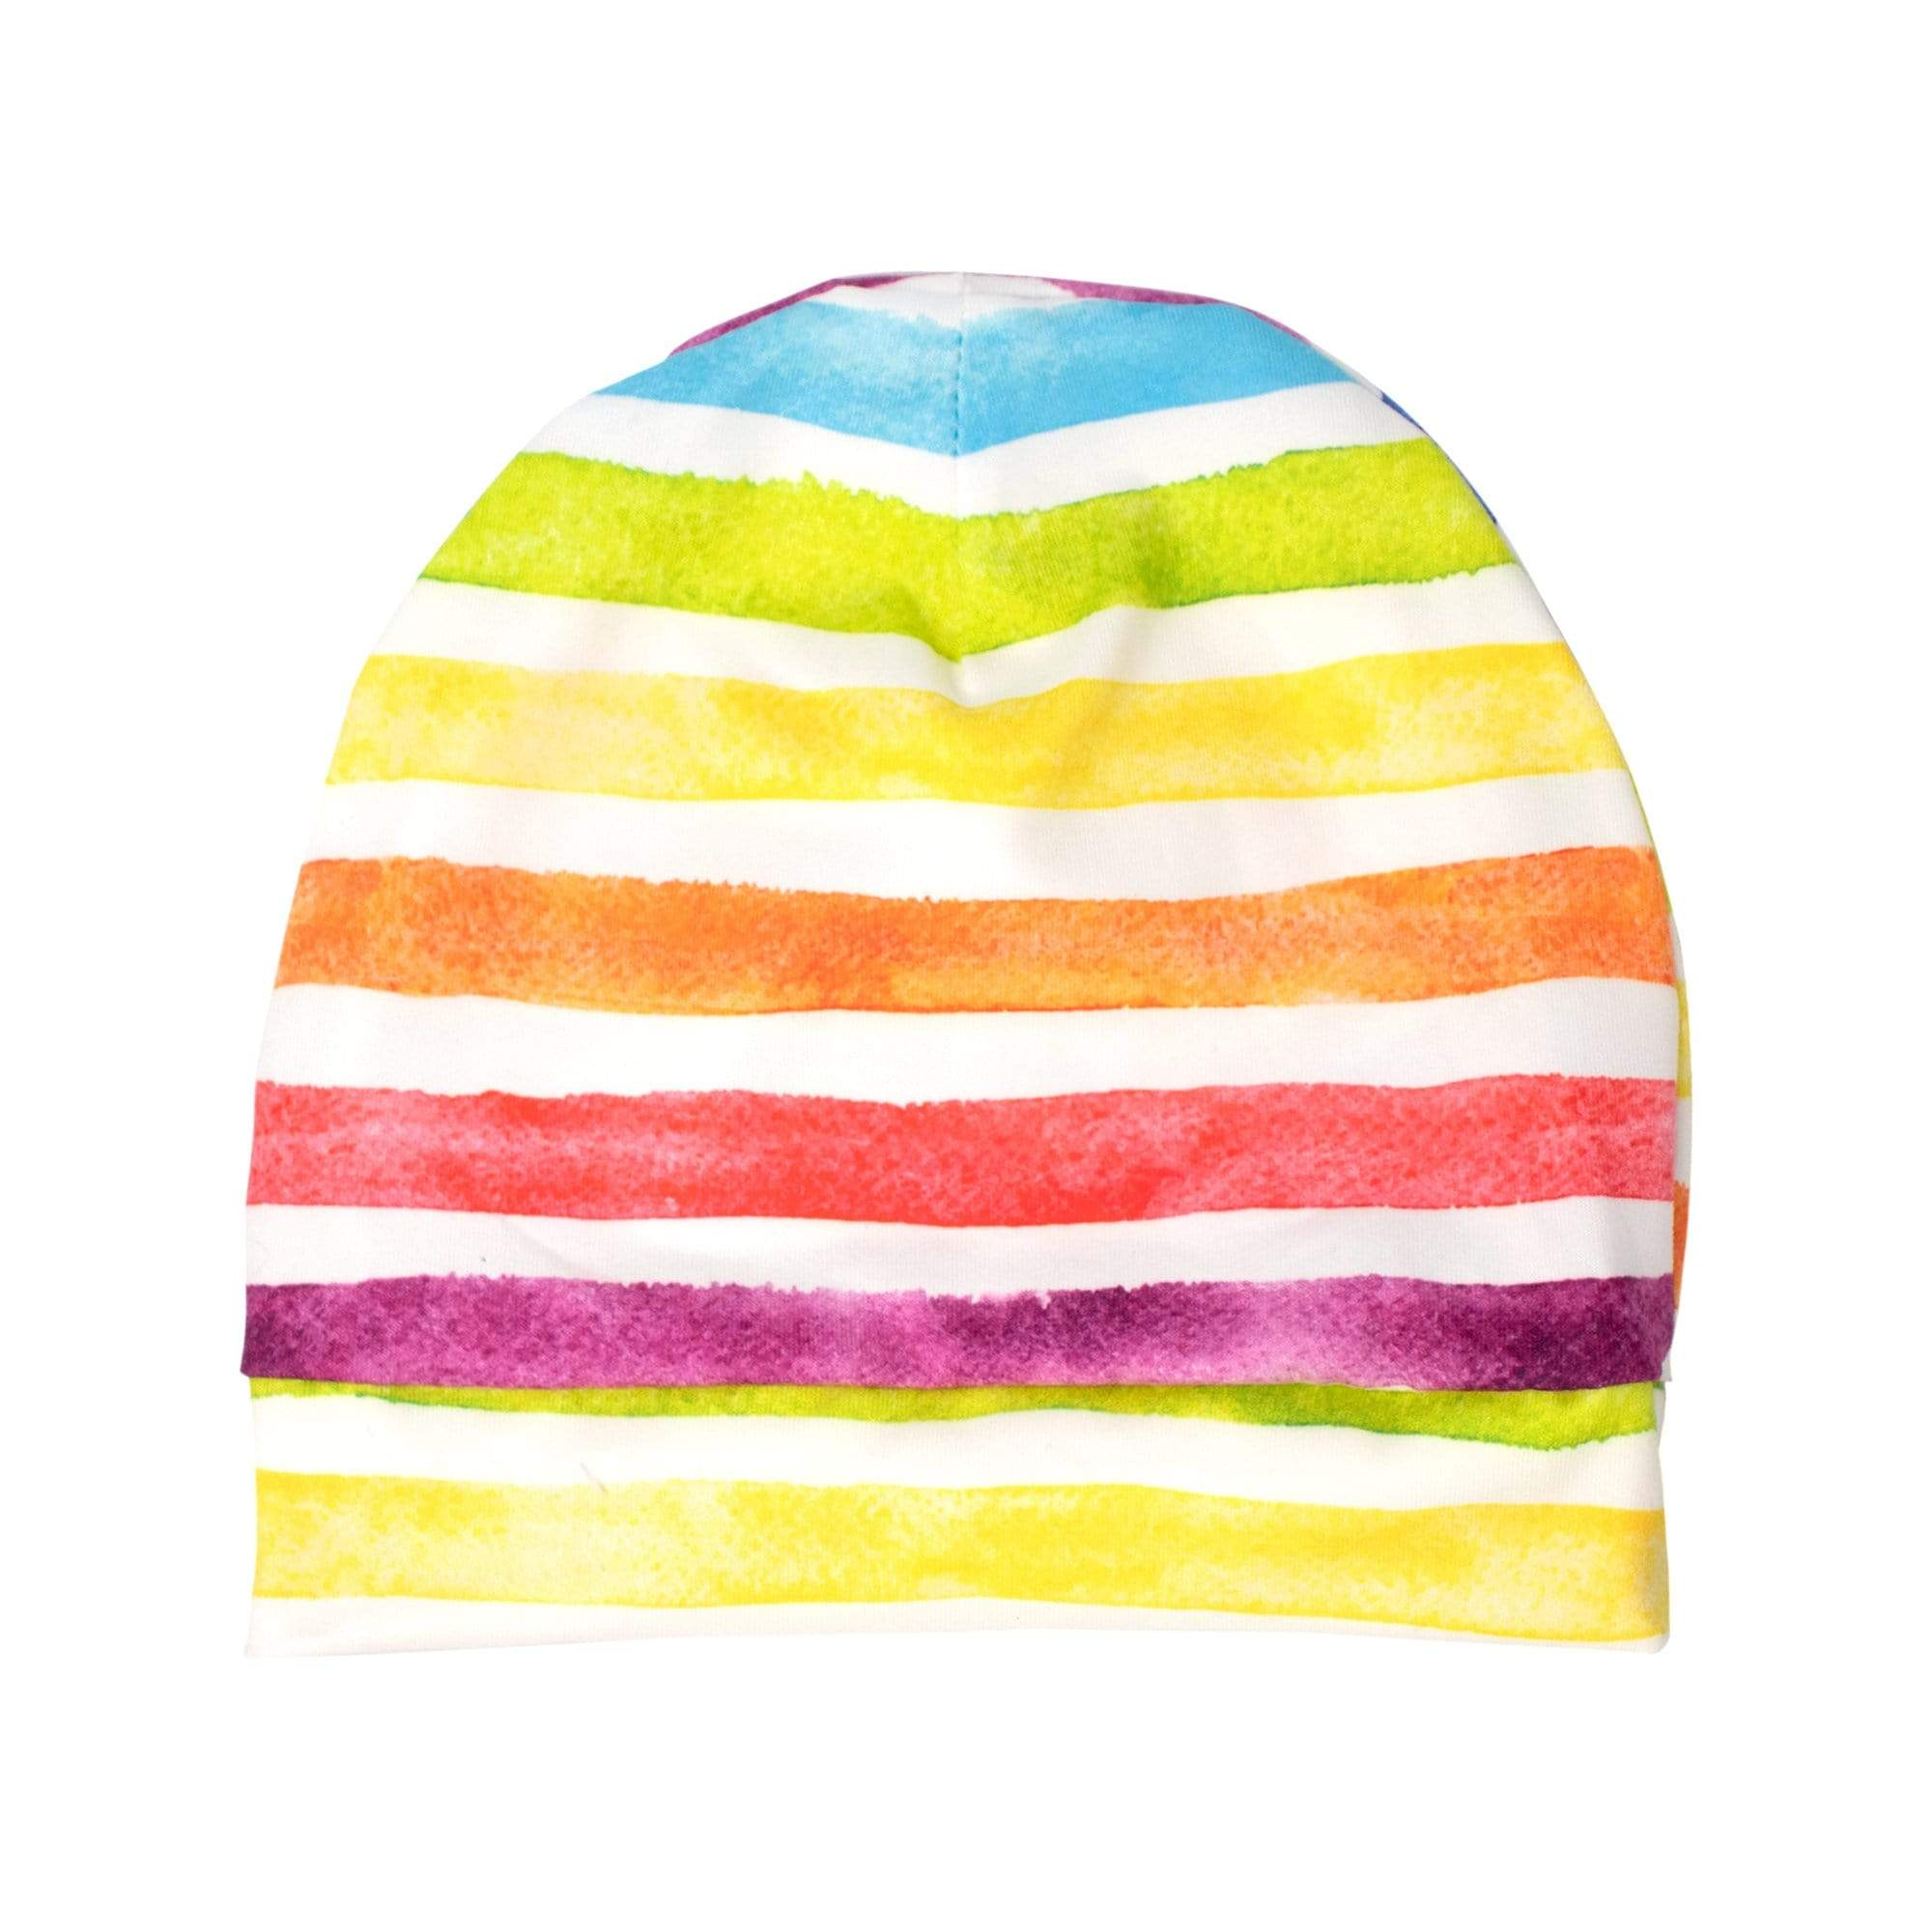 Imagine Newborn Stretchy Hat - Rainbow Connection